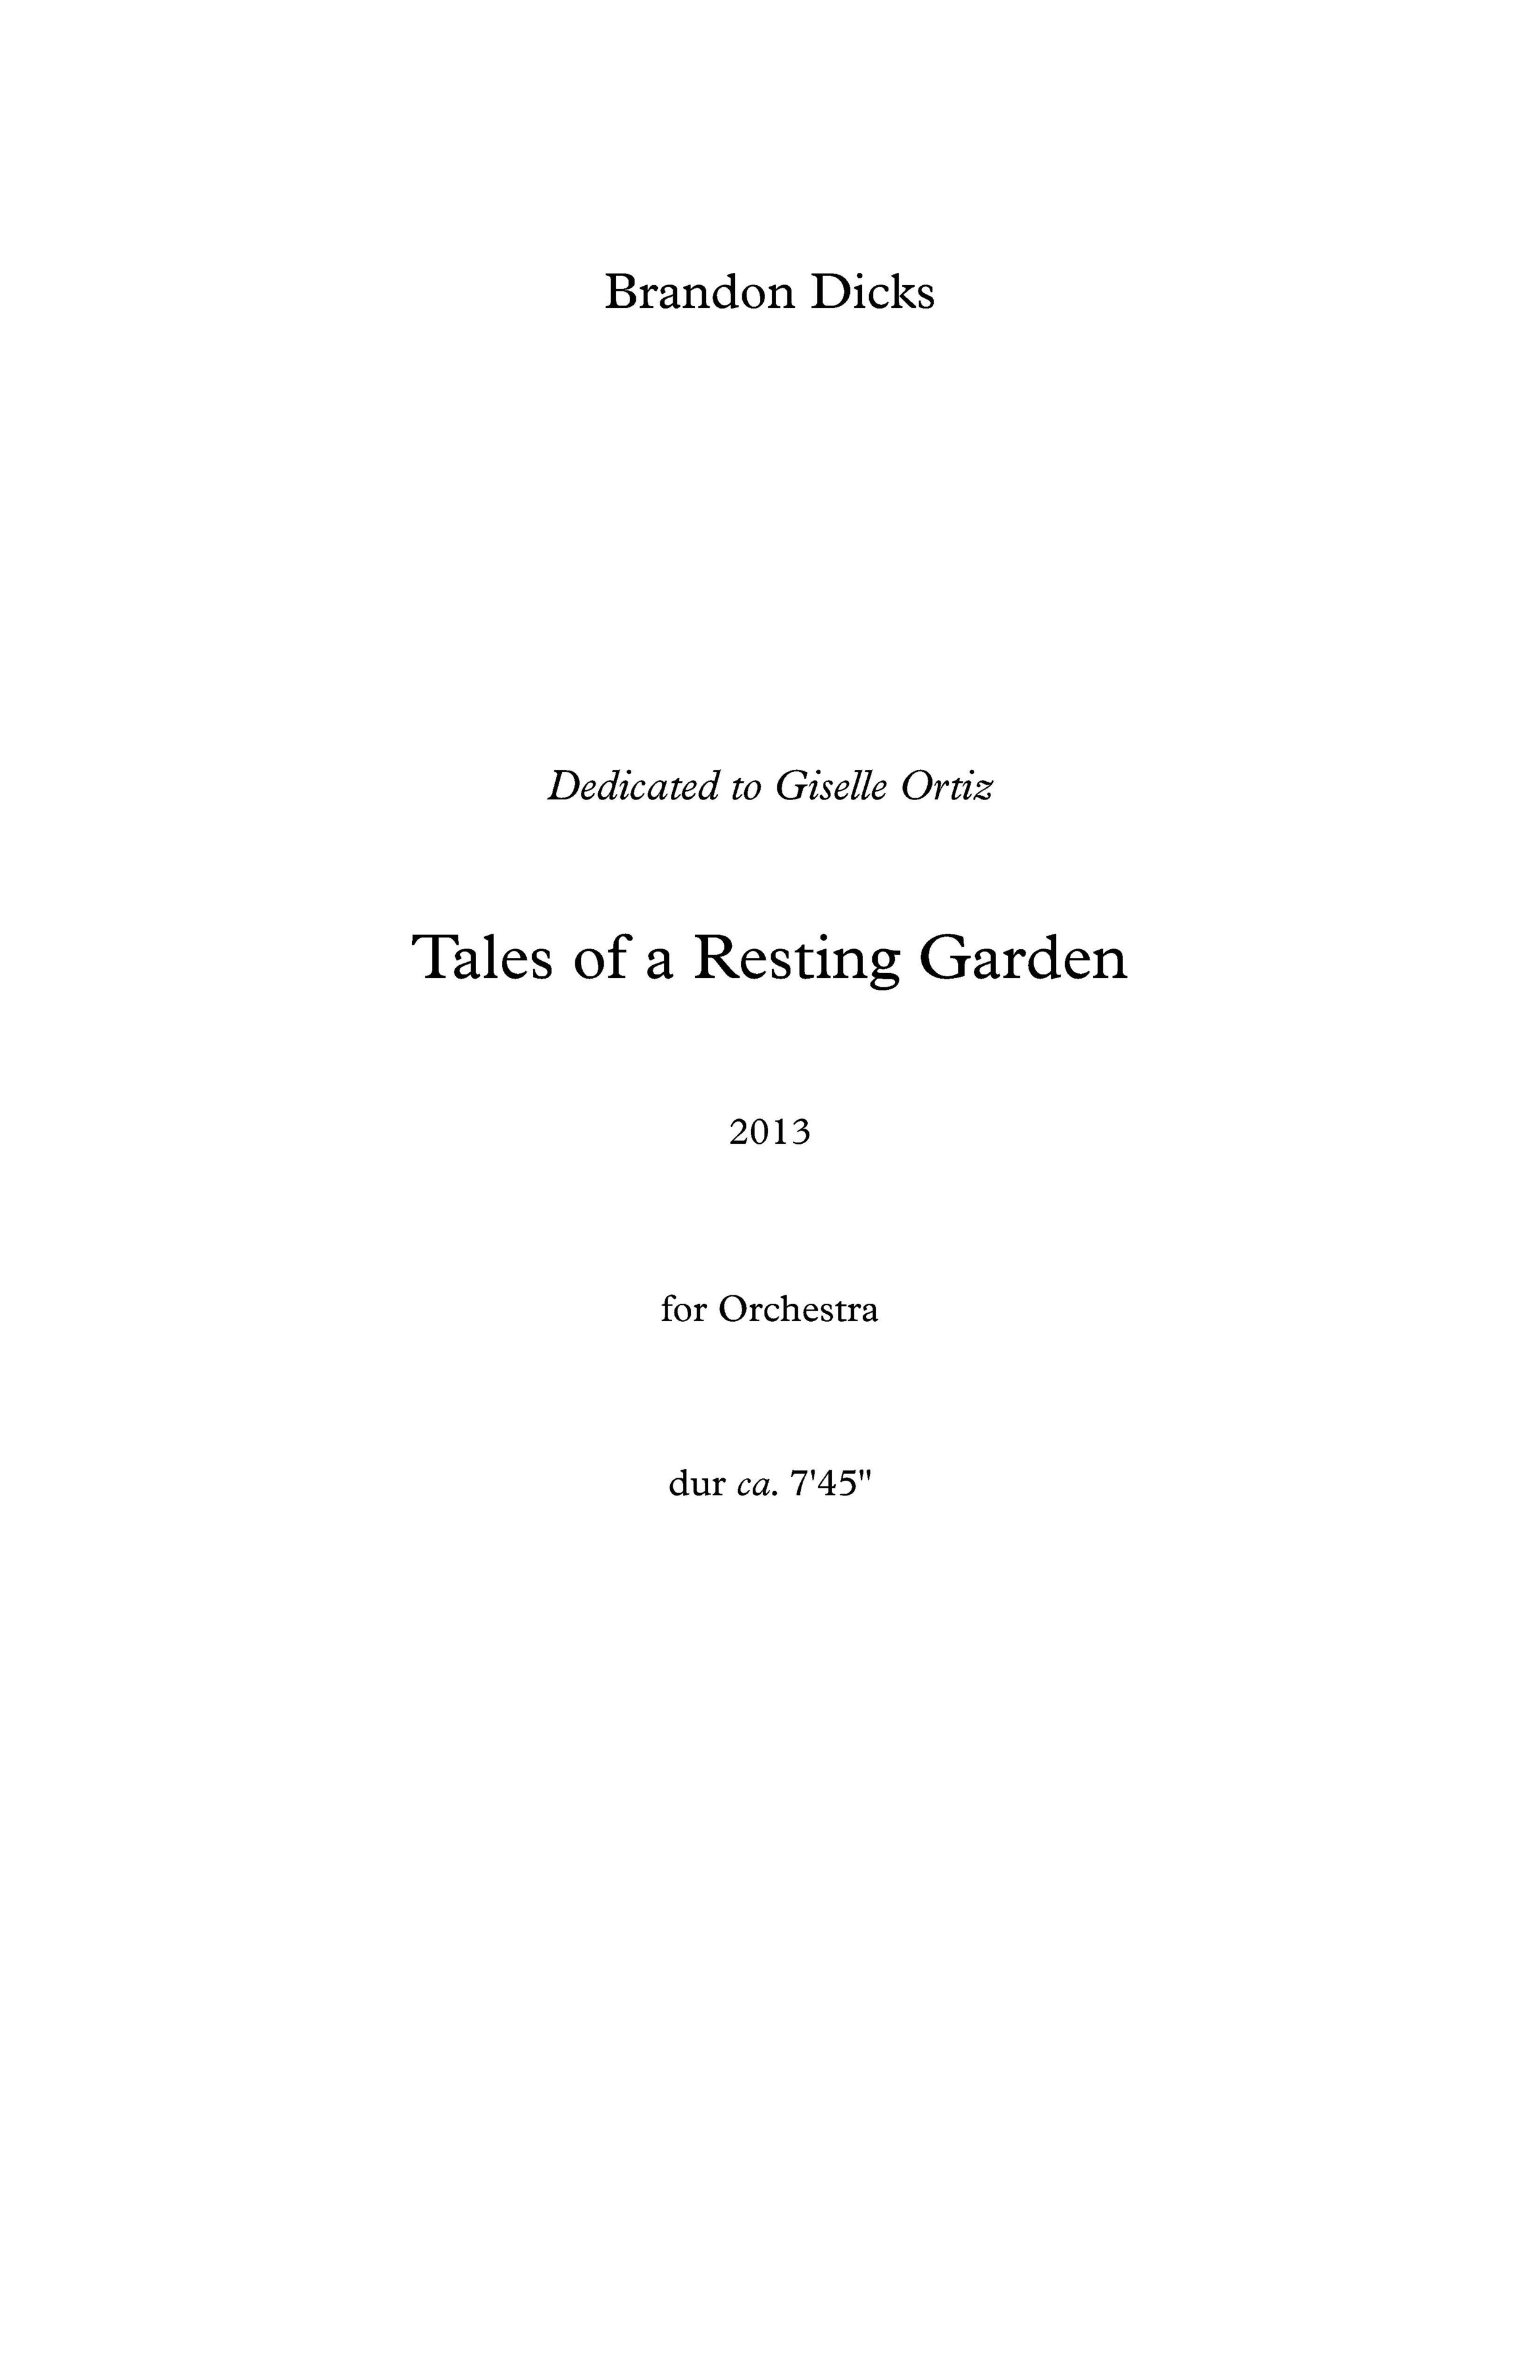 Tales of a Resting Garden (copy)_page_01.jpg